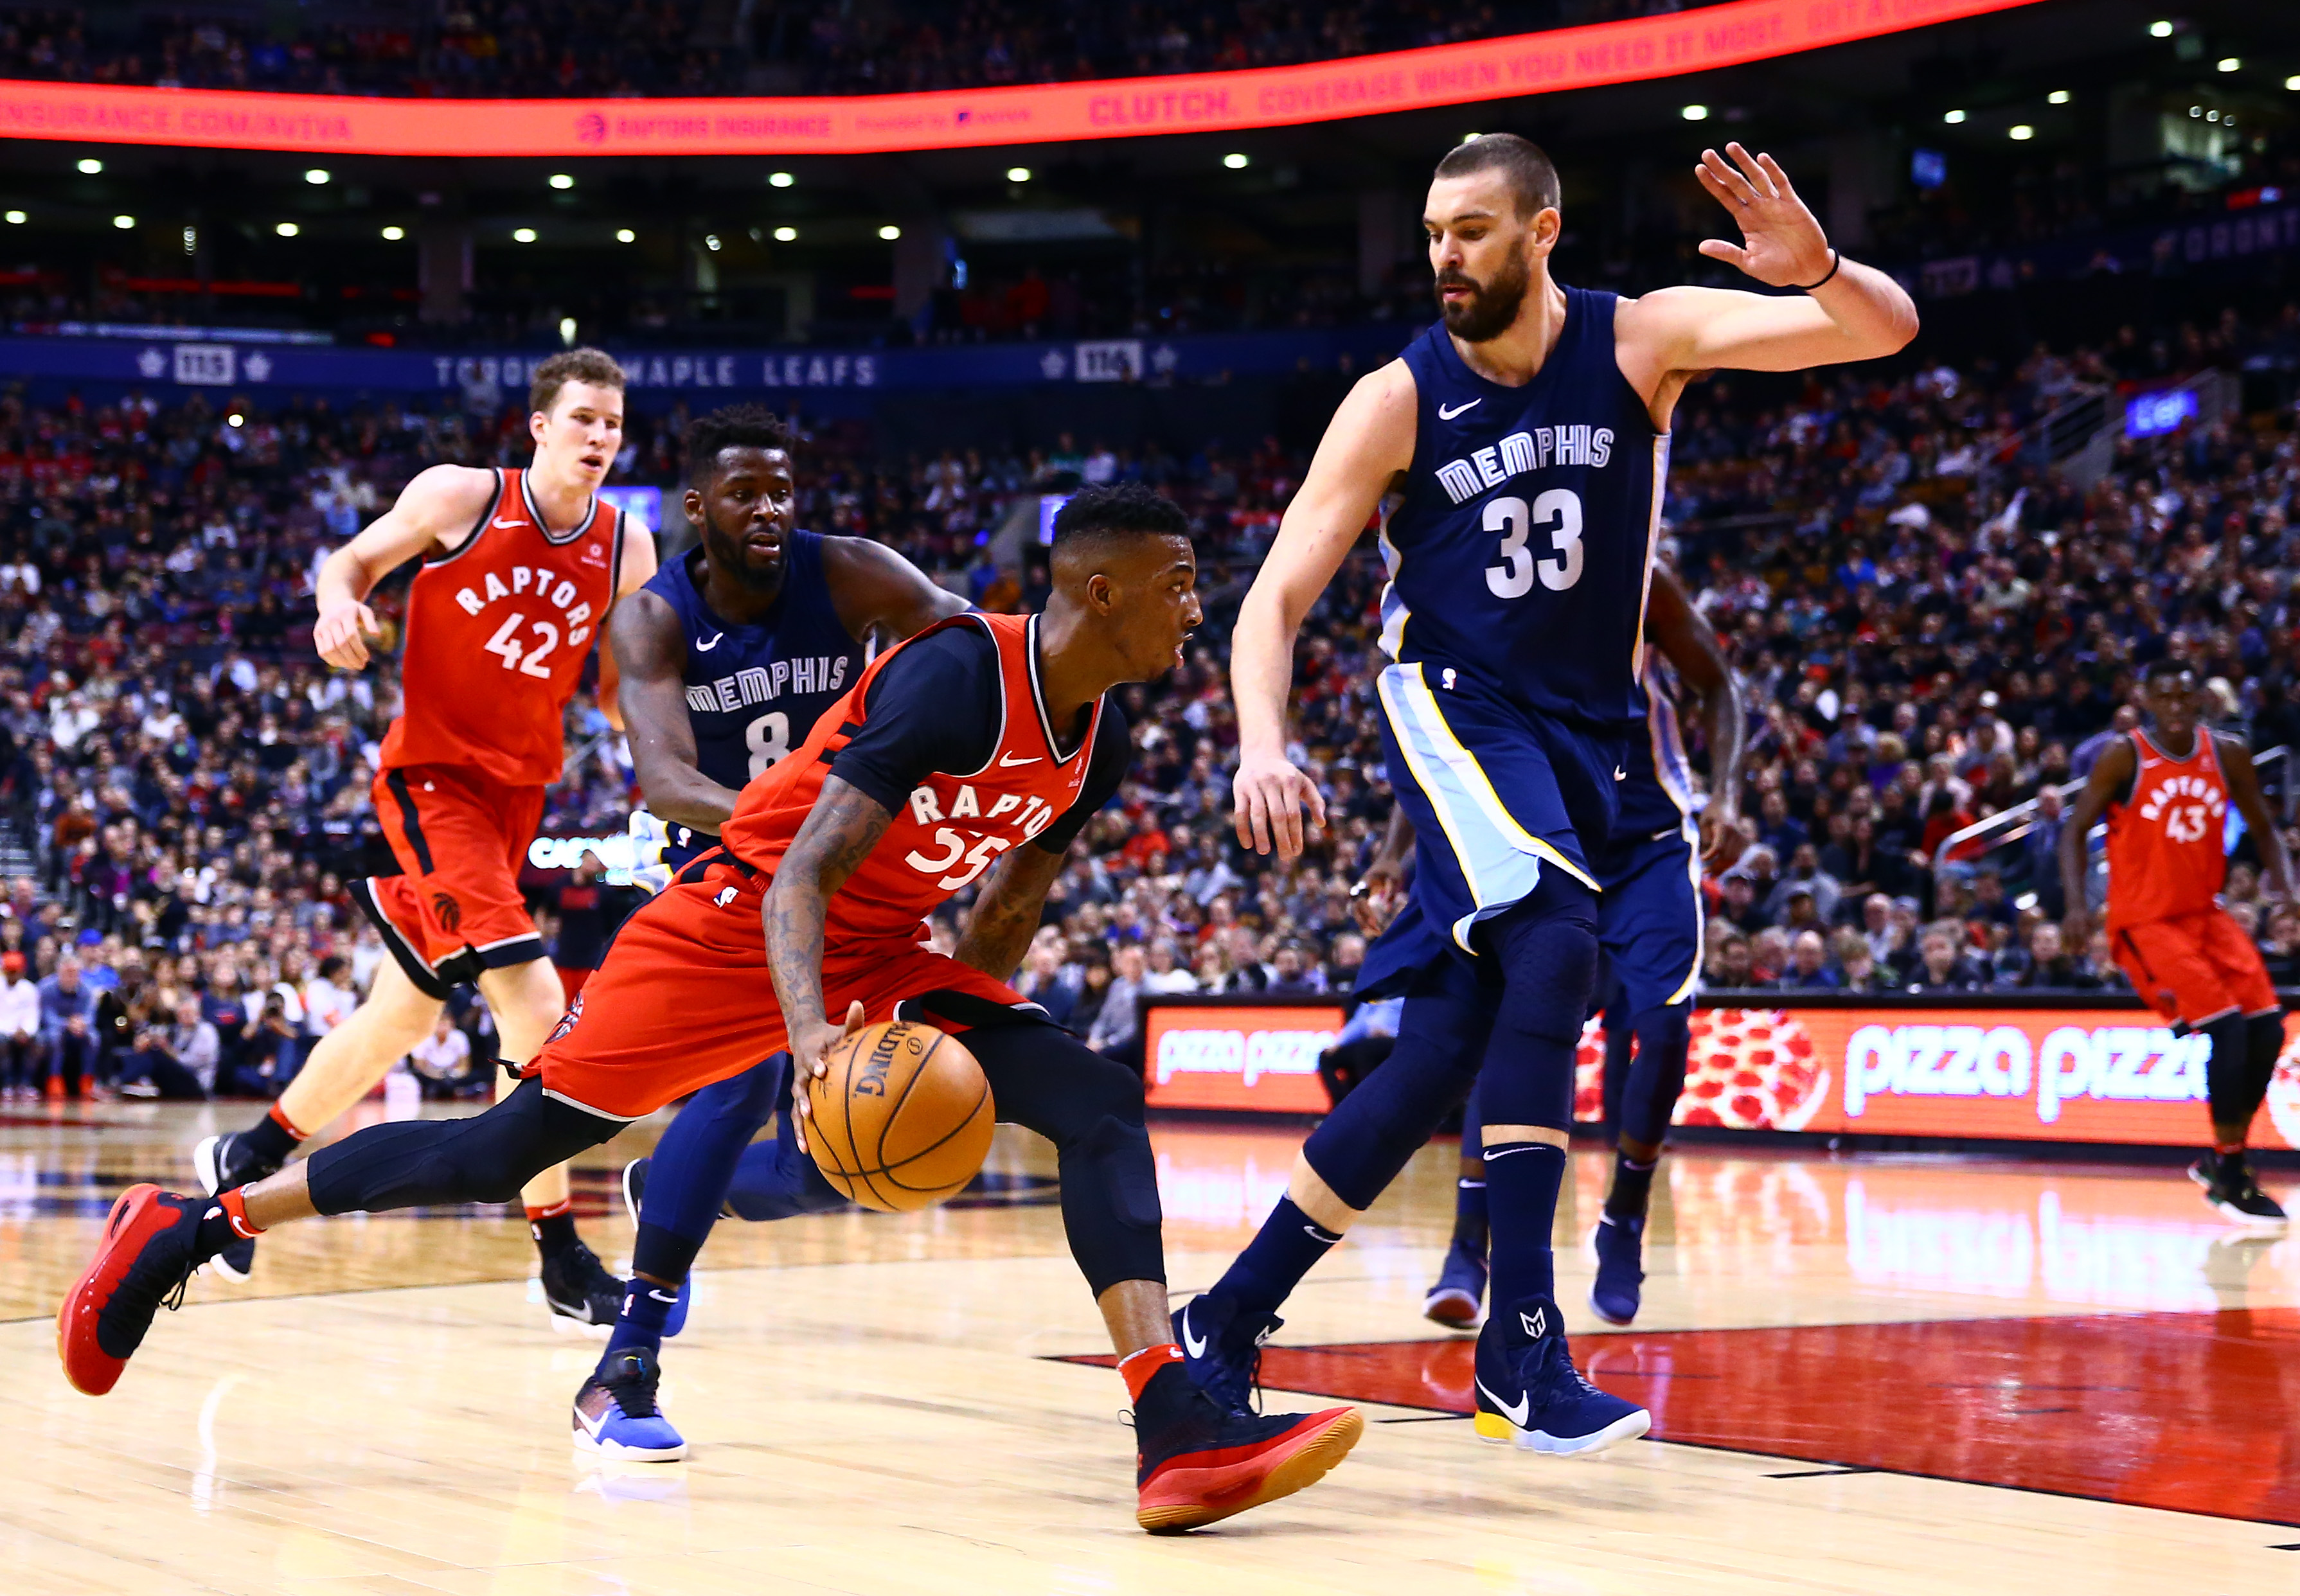 Wright scores 15 off the bench; Raptors top Grizzlies, 101-86